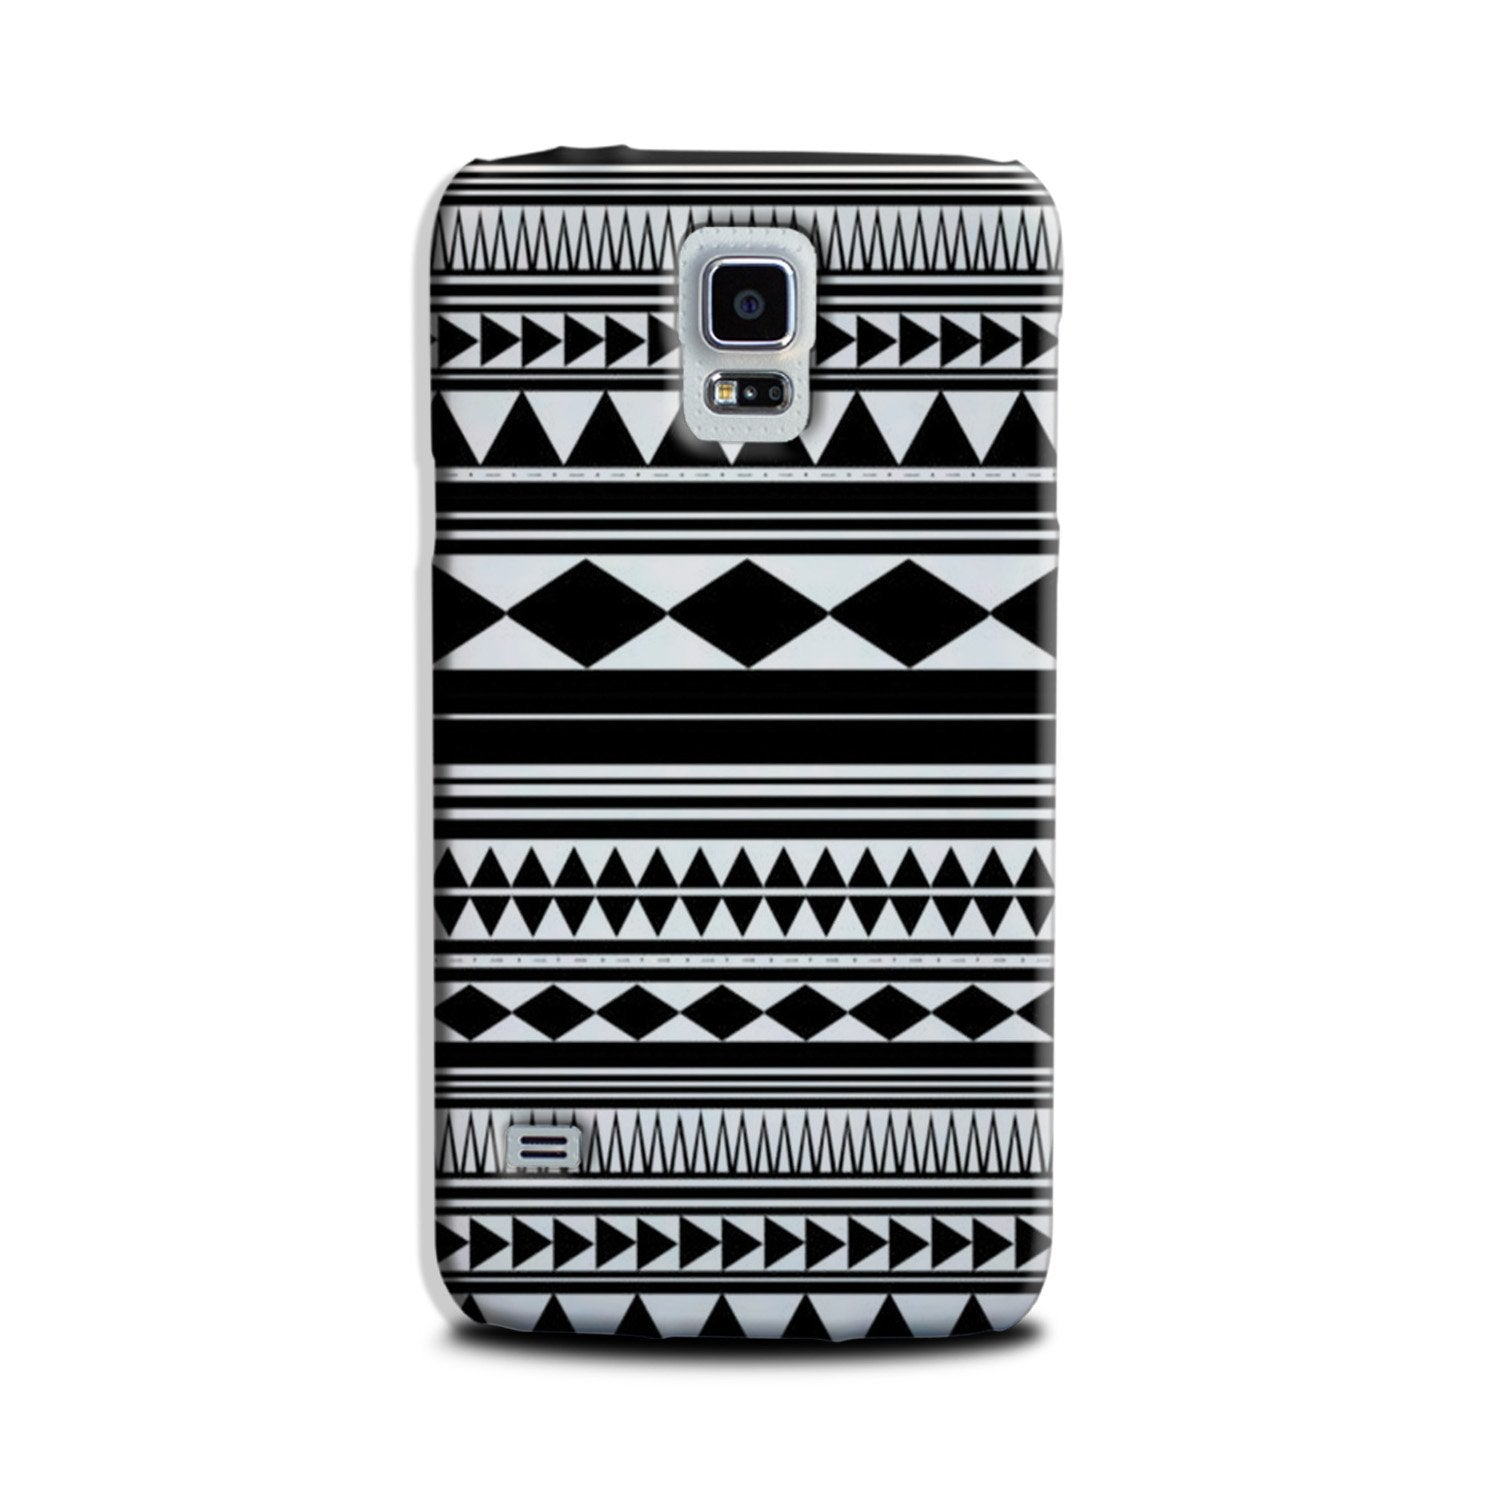 Black white Pattern Case for Galaxy S5